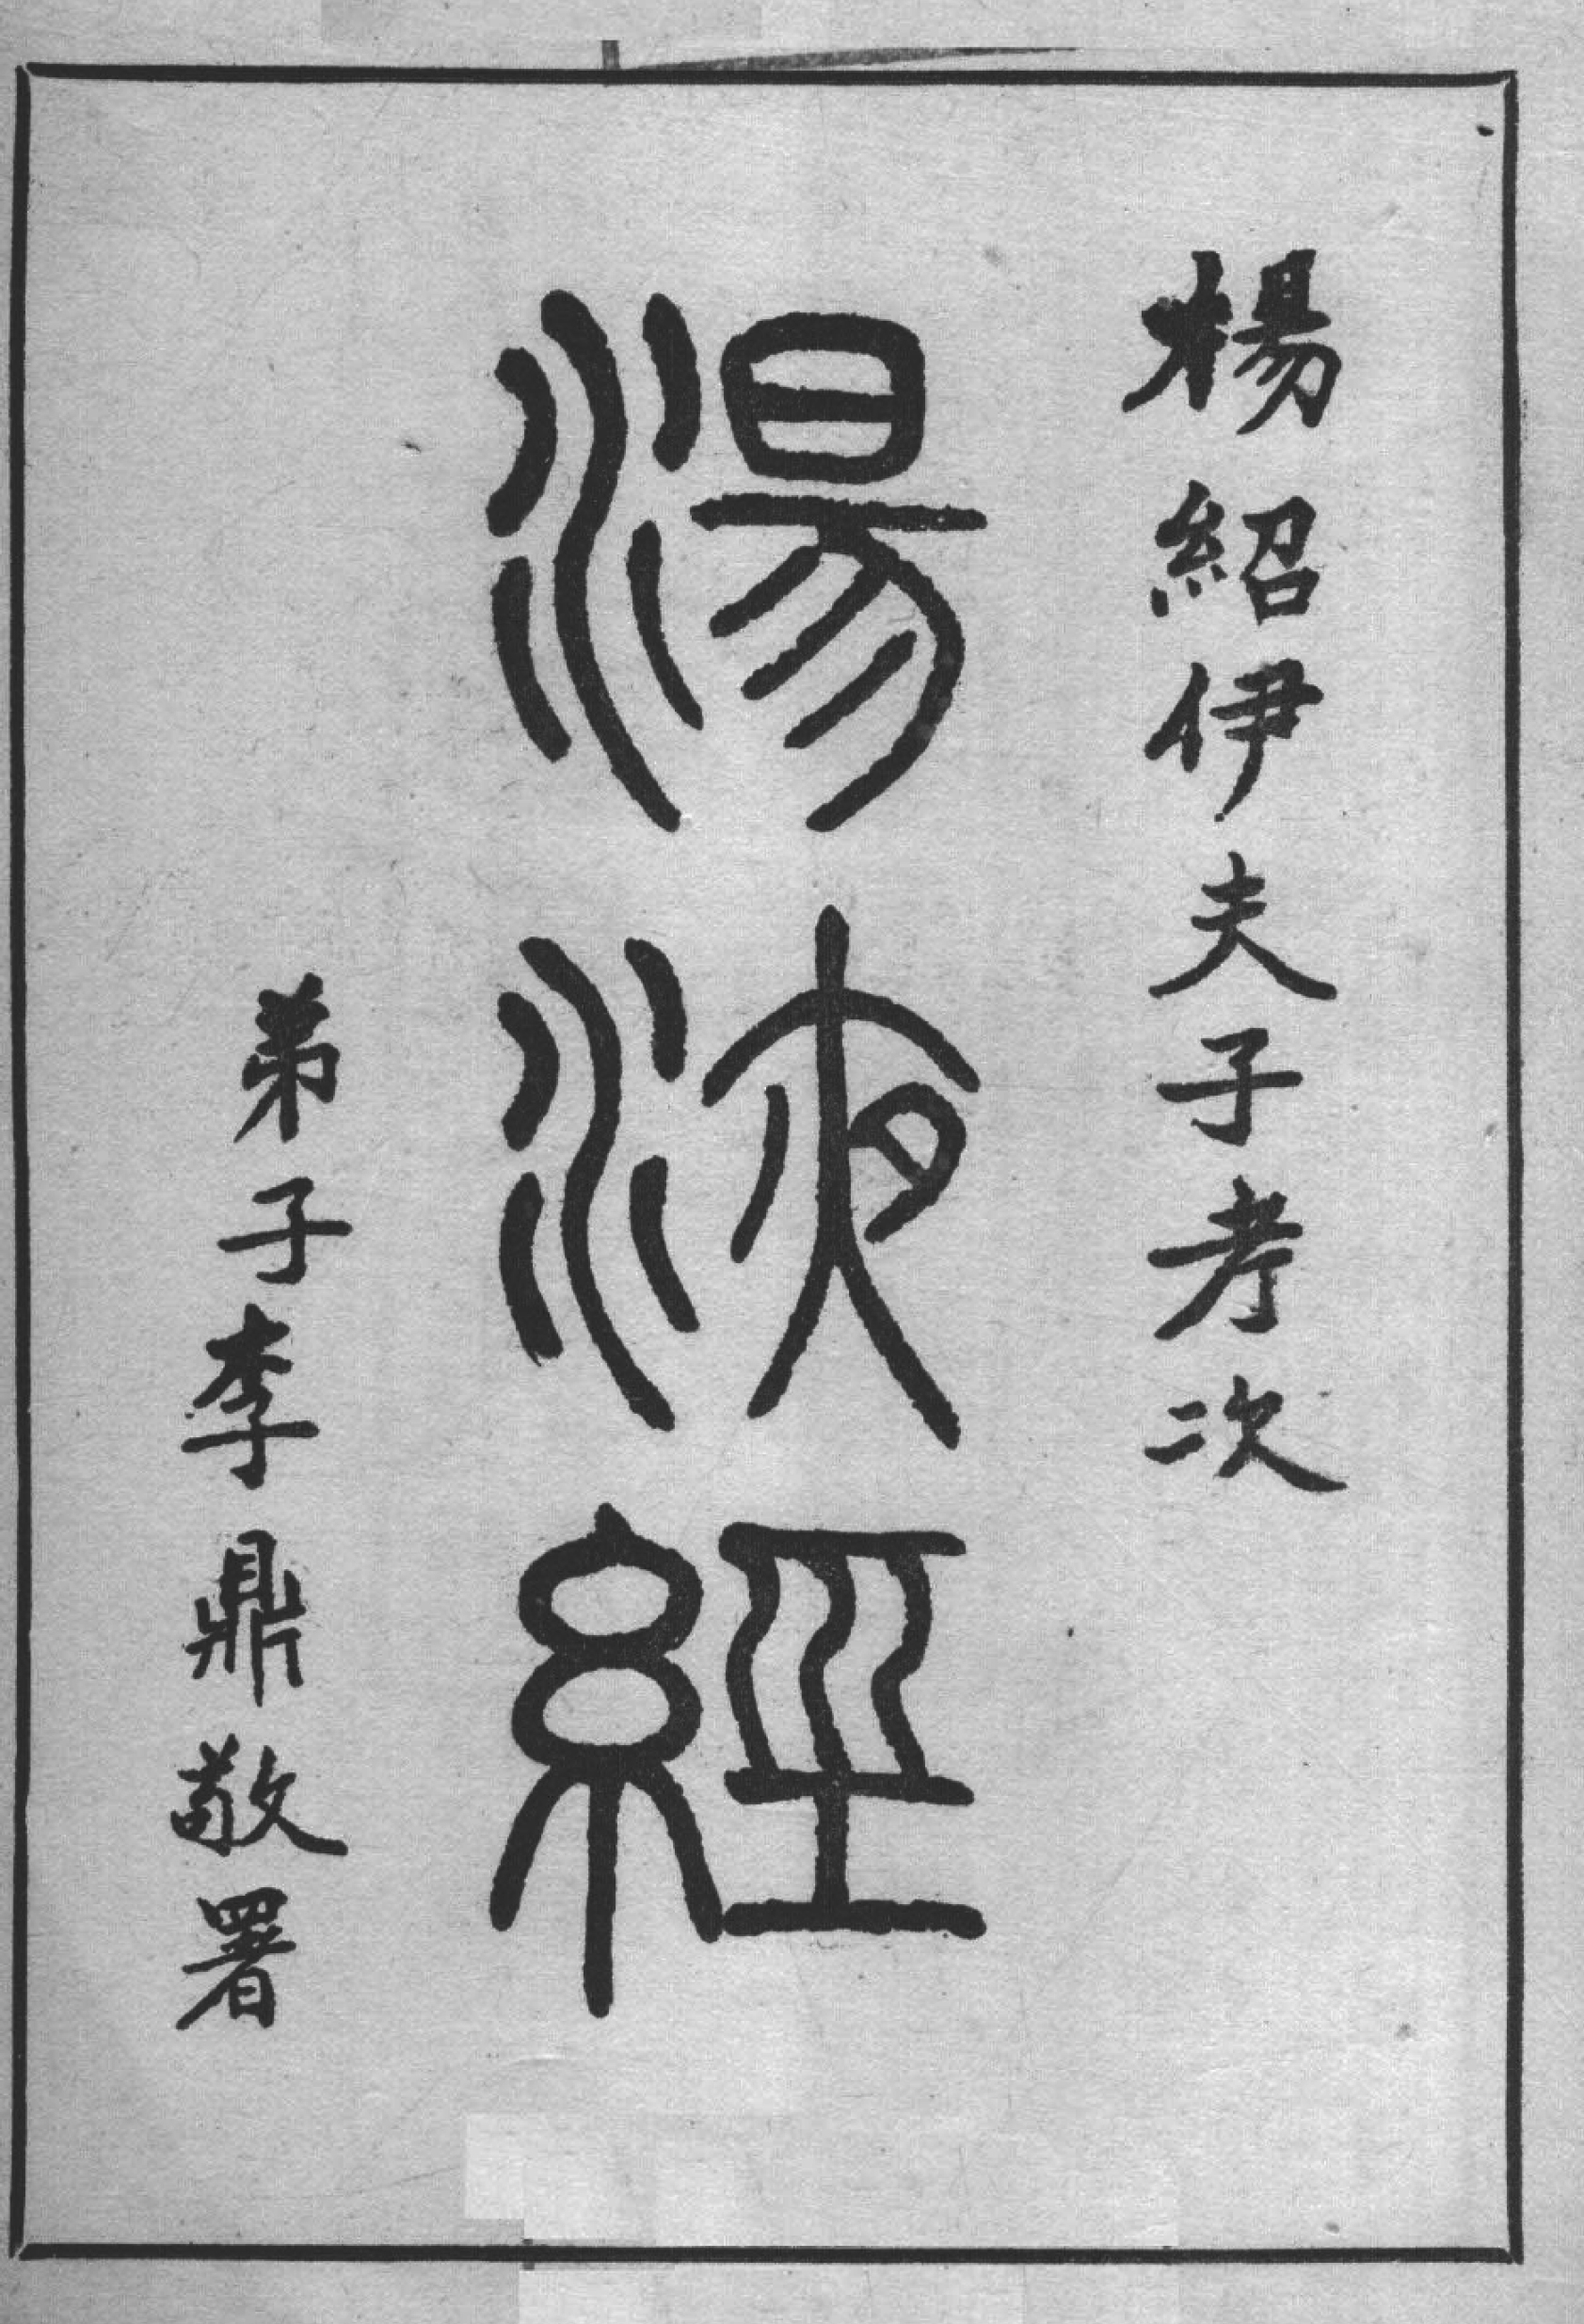 Copyright page A, showing the book title  Tang Ye Jing  湯液經 (Classic of Decoction), the words 'Yang Shao Yi Fu Zi Kao Ci 楊紹伊夫子考次' (Compiled by Teacher Yang Shaoyi) and 'Di Zi Li Ding Jing Shu 弟子李鼎敬署' (Respectfully Signed by [Yang's] Student Li Ding).